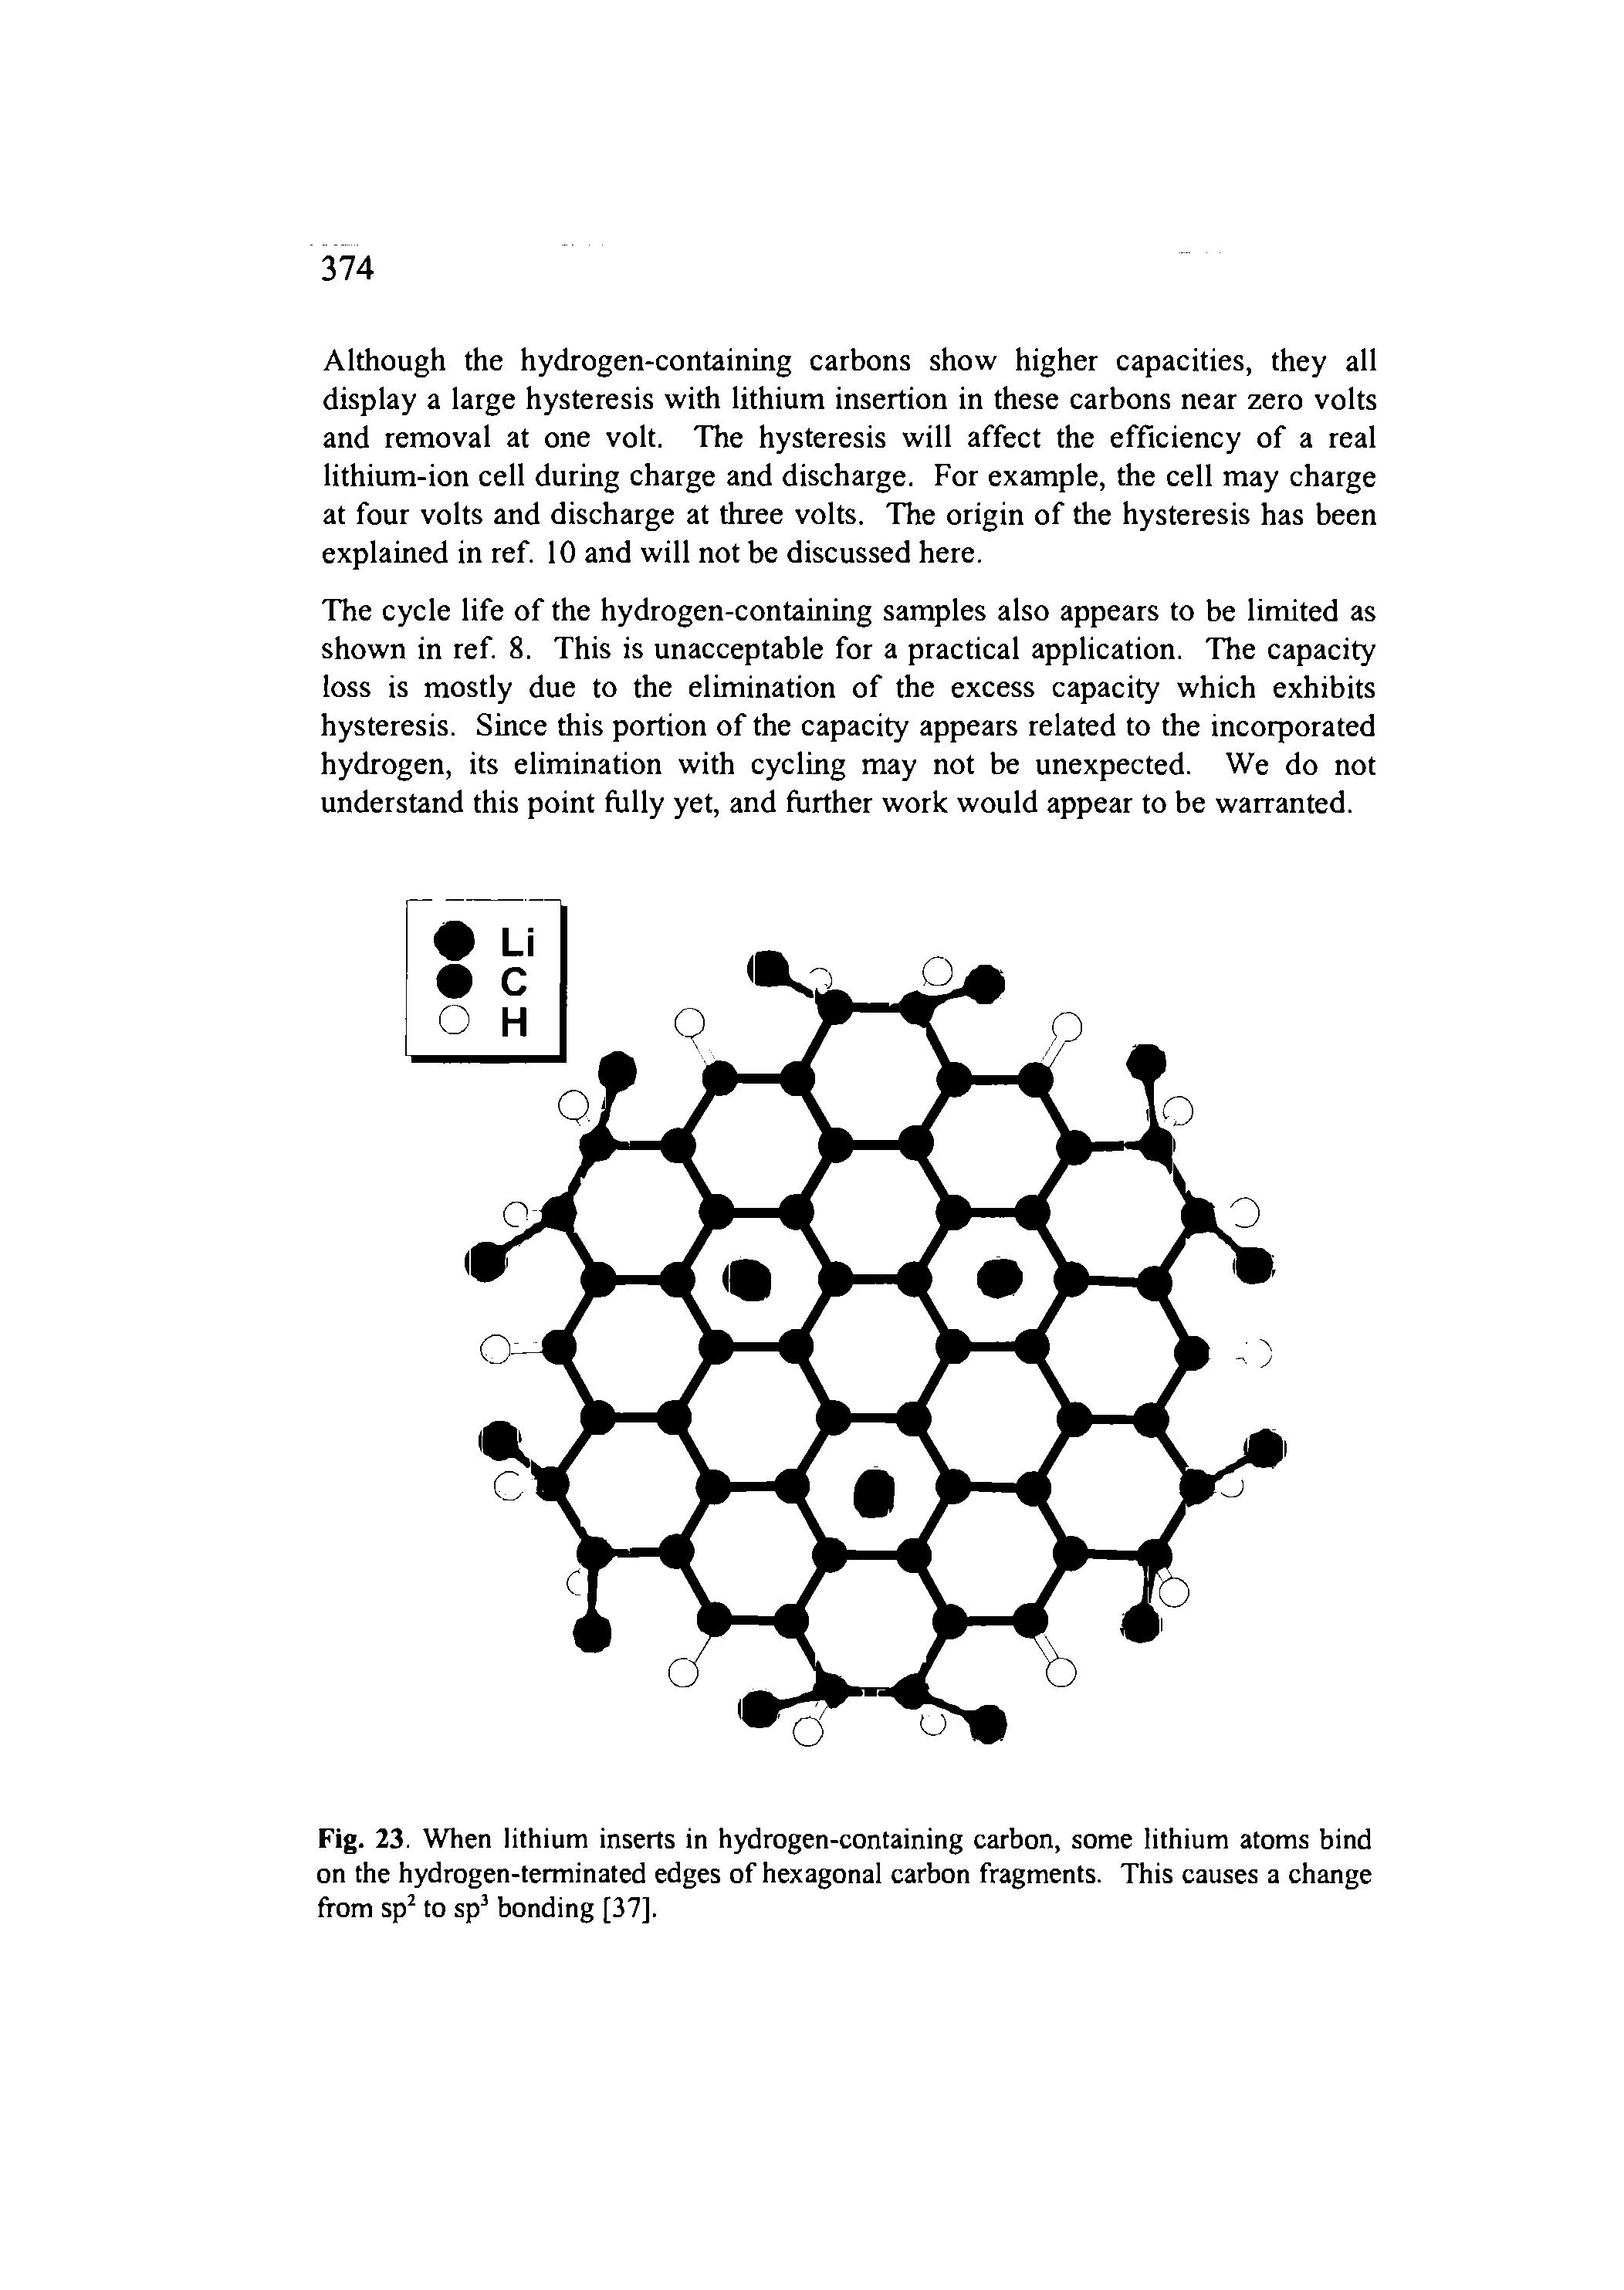 Fig. 23. When lithium inserts in hydrogen-containing carbon, some lithium atoms bind on the hydrogen-terminated edges of hexagonal carbon fragments. This causes a change from sp to sp bonding [37].